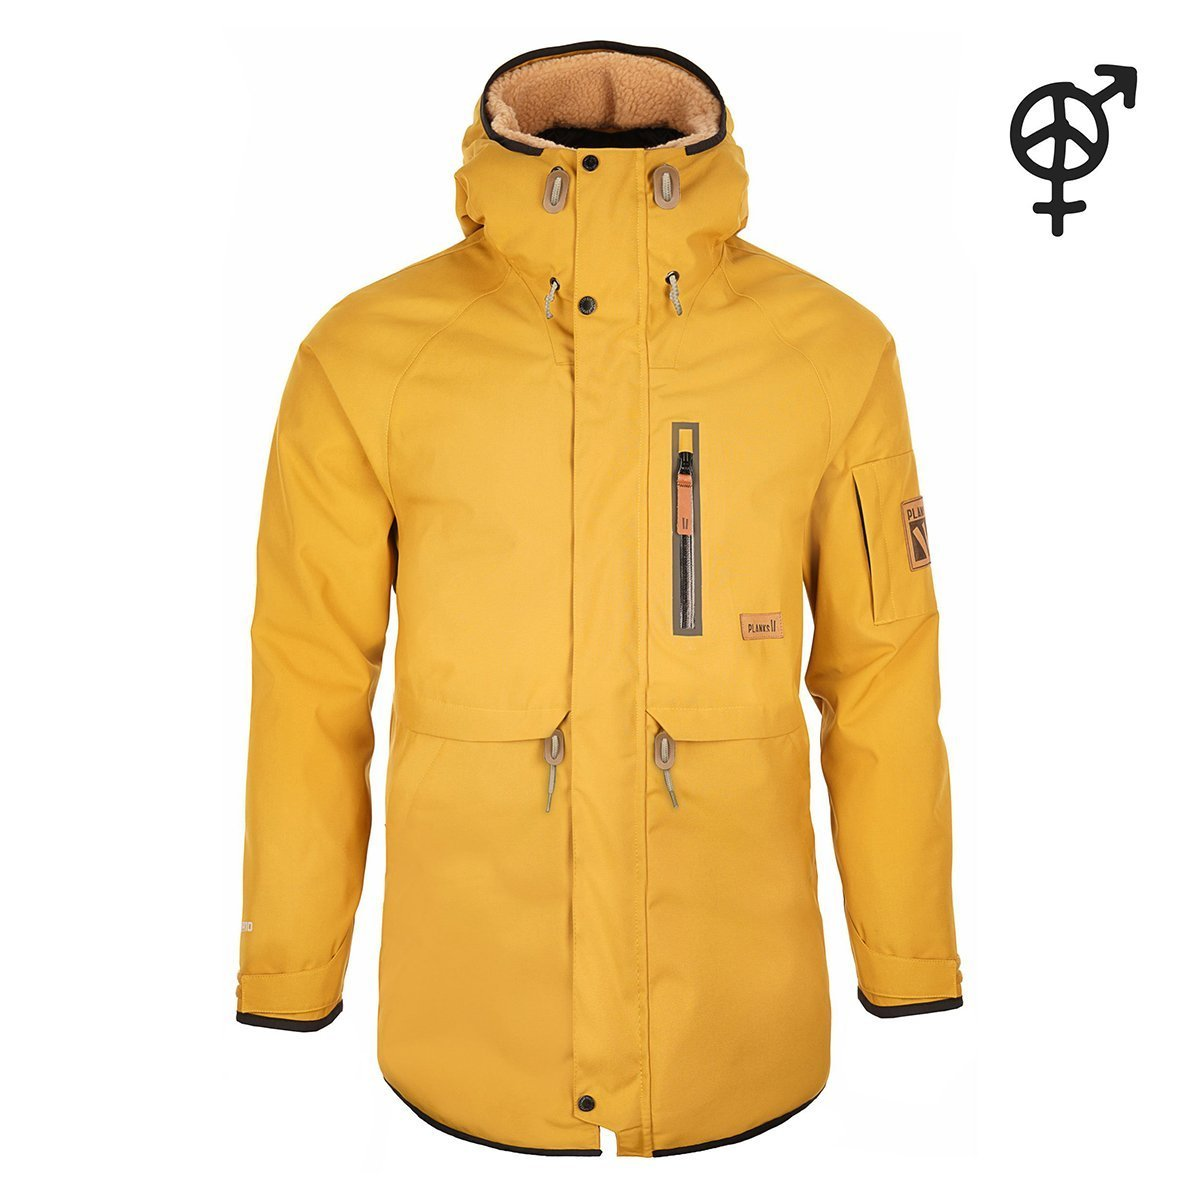 UO-TPP101B-S, Planks, The People's Parka, English Mustard, Ski Coat | Snow Jacket